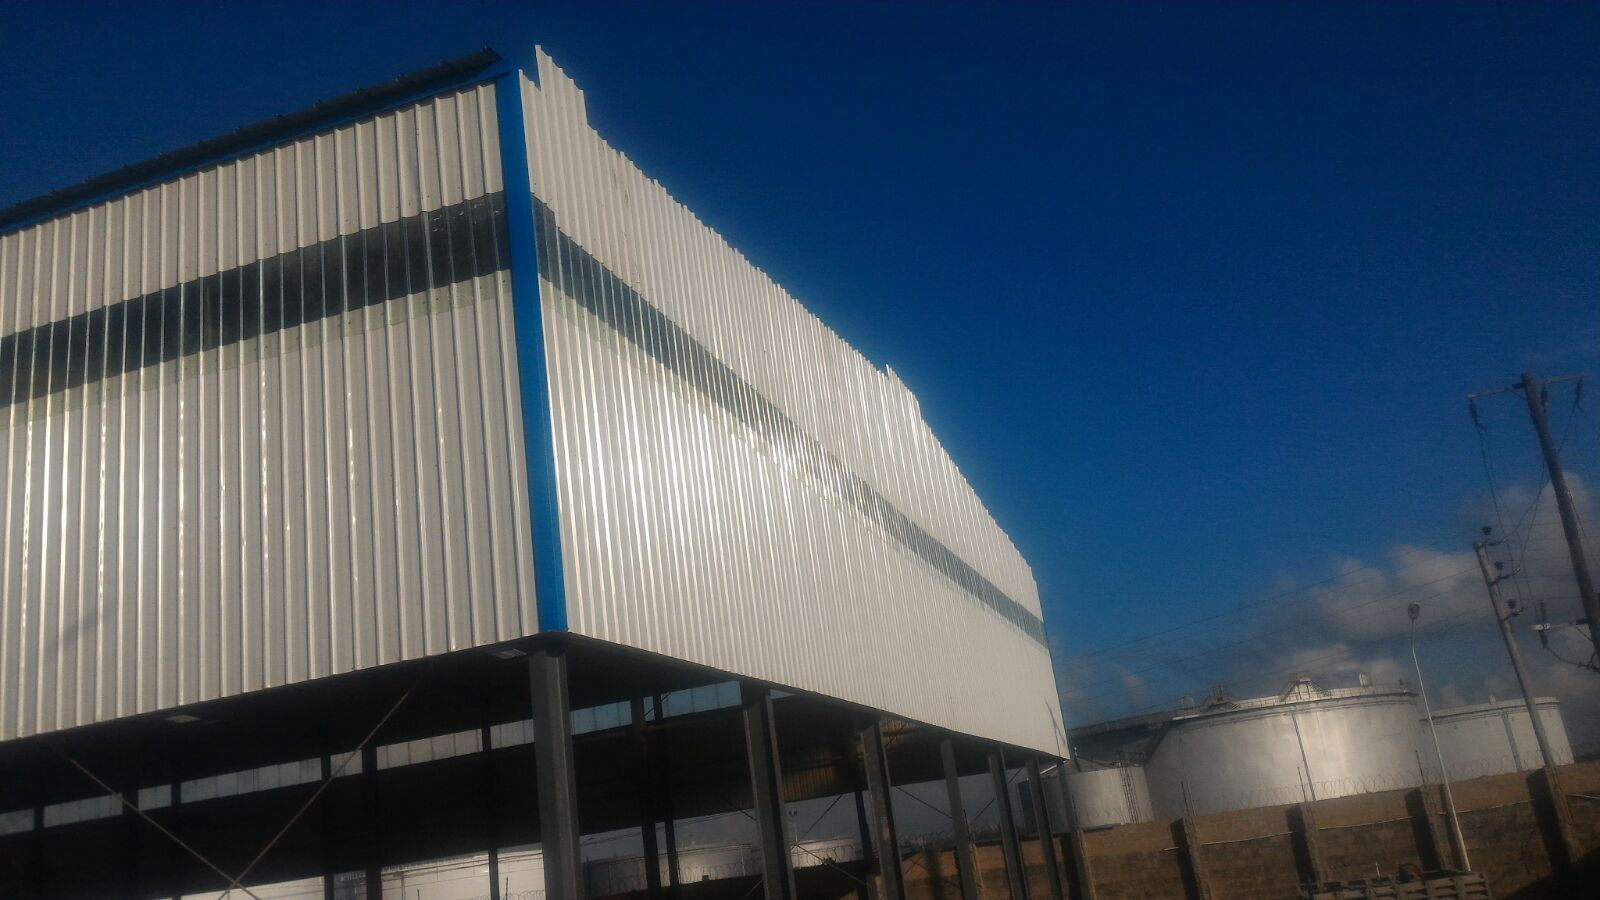 2017 Hot Sale Light Large Span Steel Metal Prefabricated Modular Building